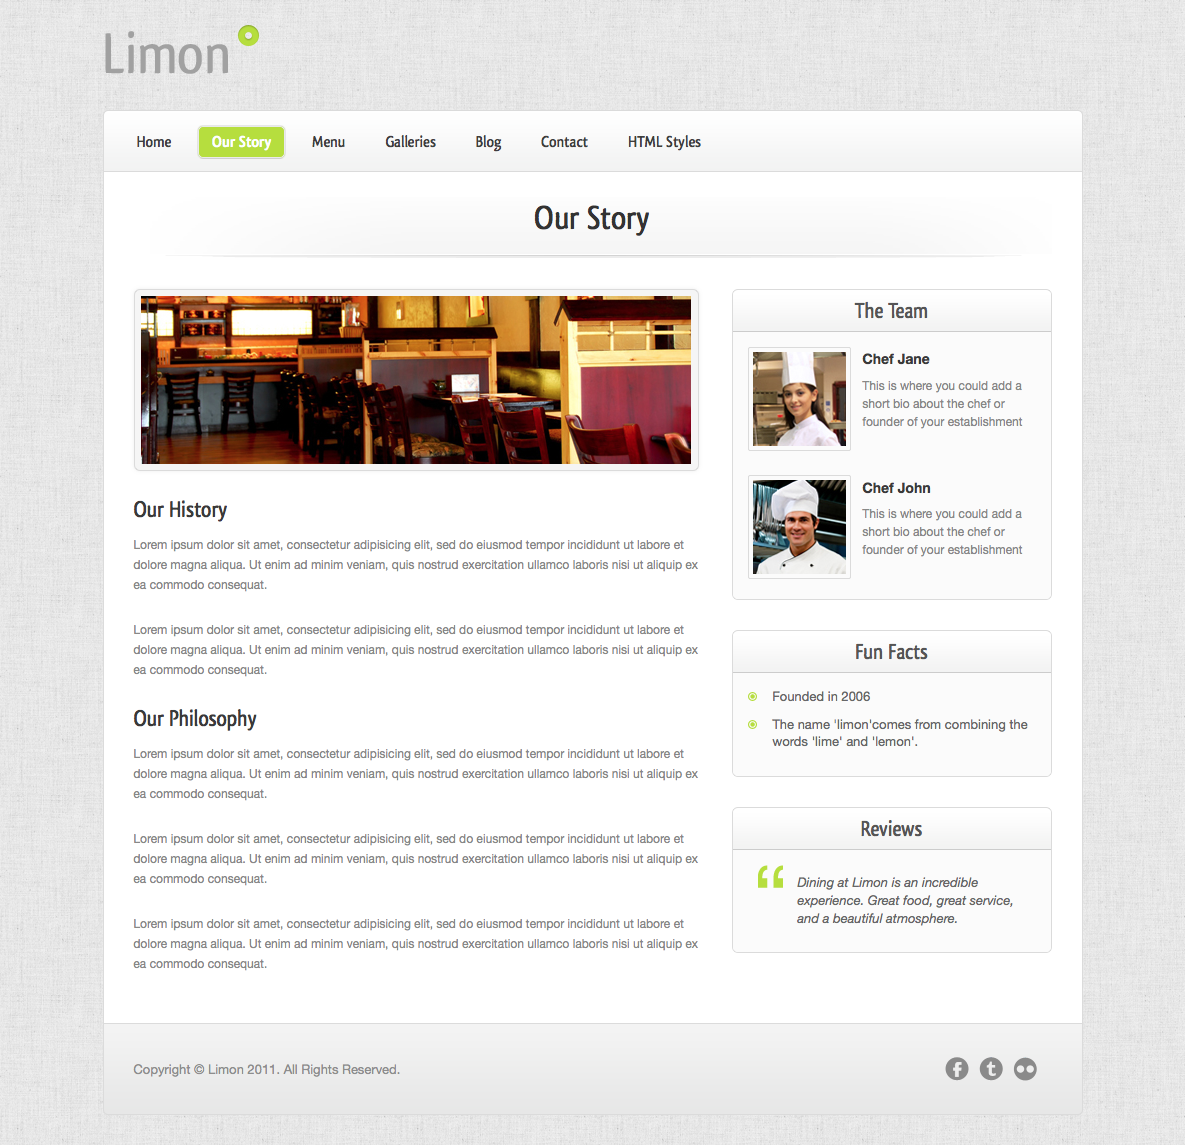 Limon - A Restaurant and Spa Wordpress Theme - Our Story - Reviews slider and nicely formatting content.